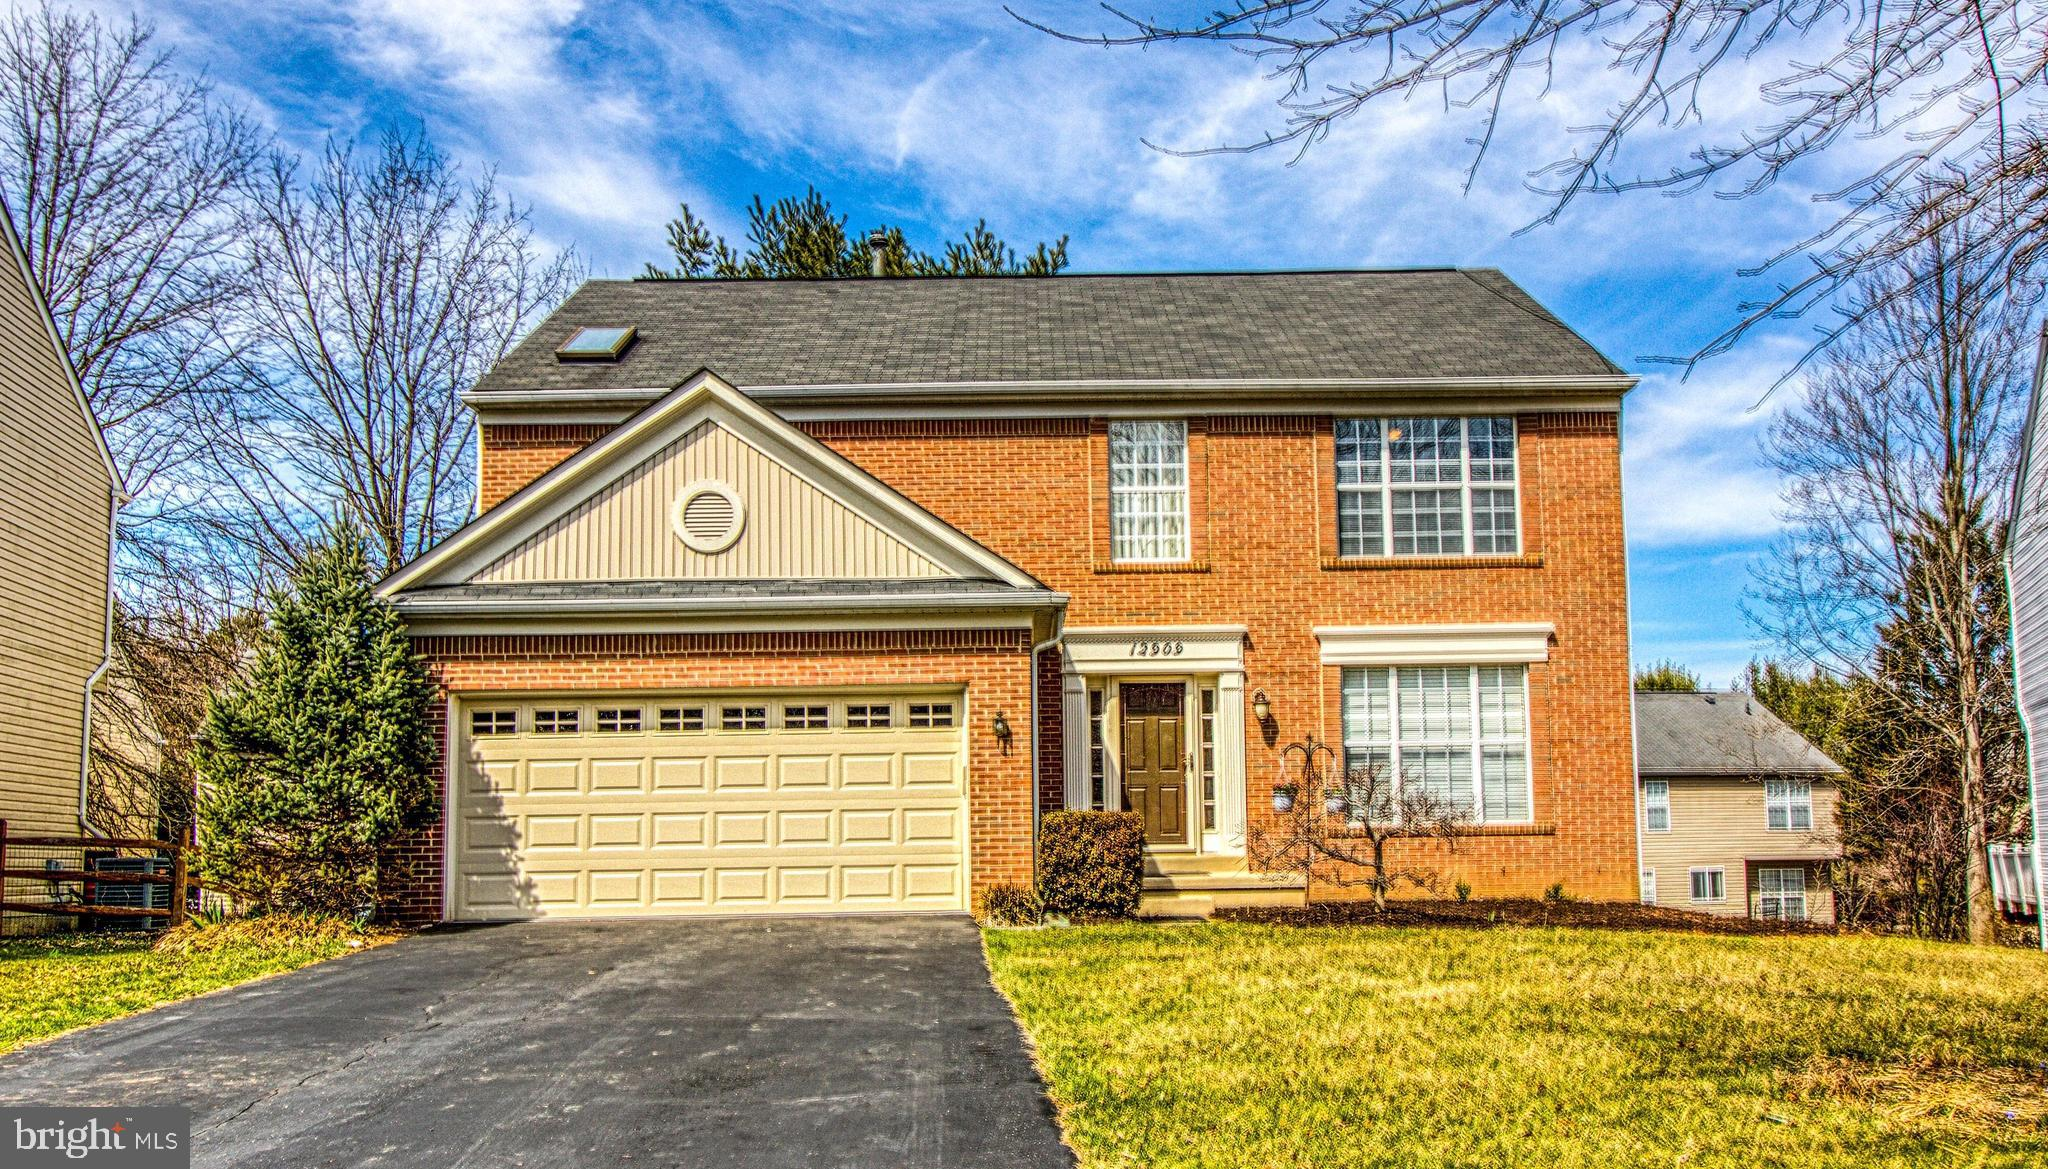 12909 WHEATRIDGE TERRACE, GERMANTOWN, MD 20874